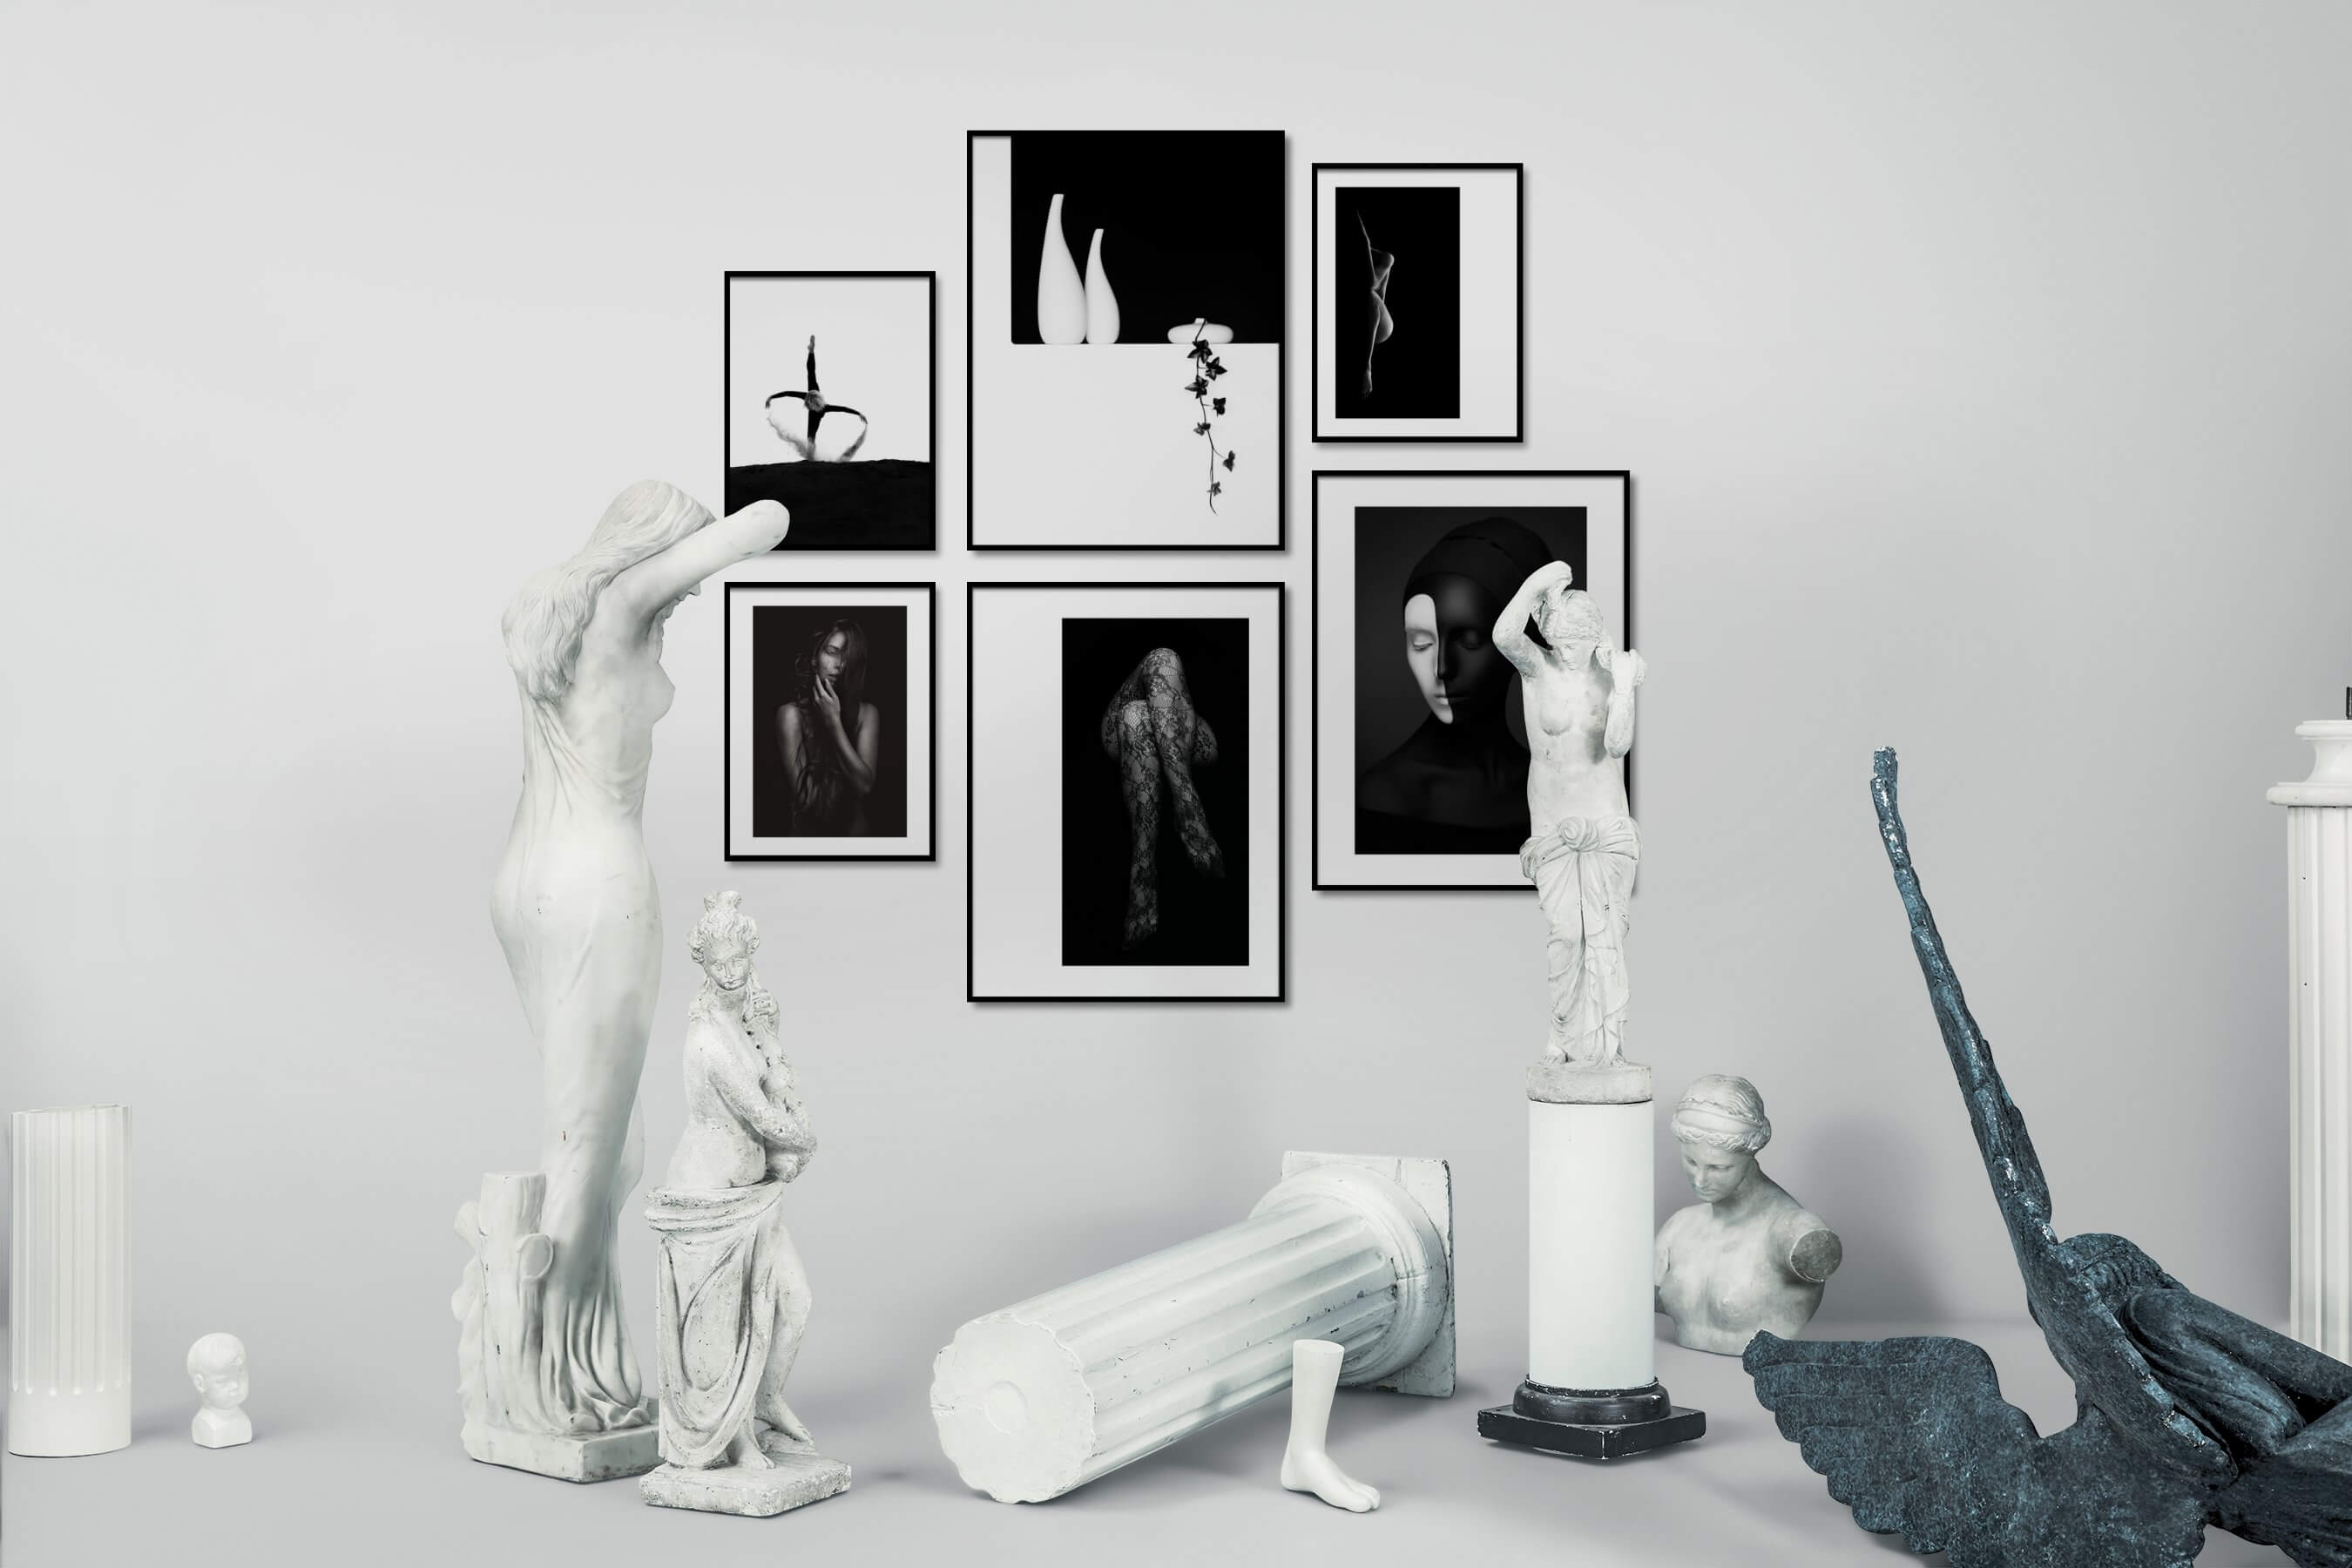 Gallery wall idea with six framed pictures arranged on a wall depicting Black & White, Bright Tones, Mindfulness, For the Minimalist, Flowers & Plants, Fashion & Beauty, and Artsy